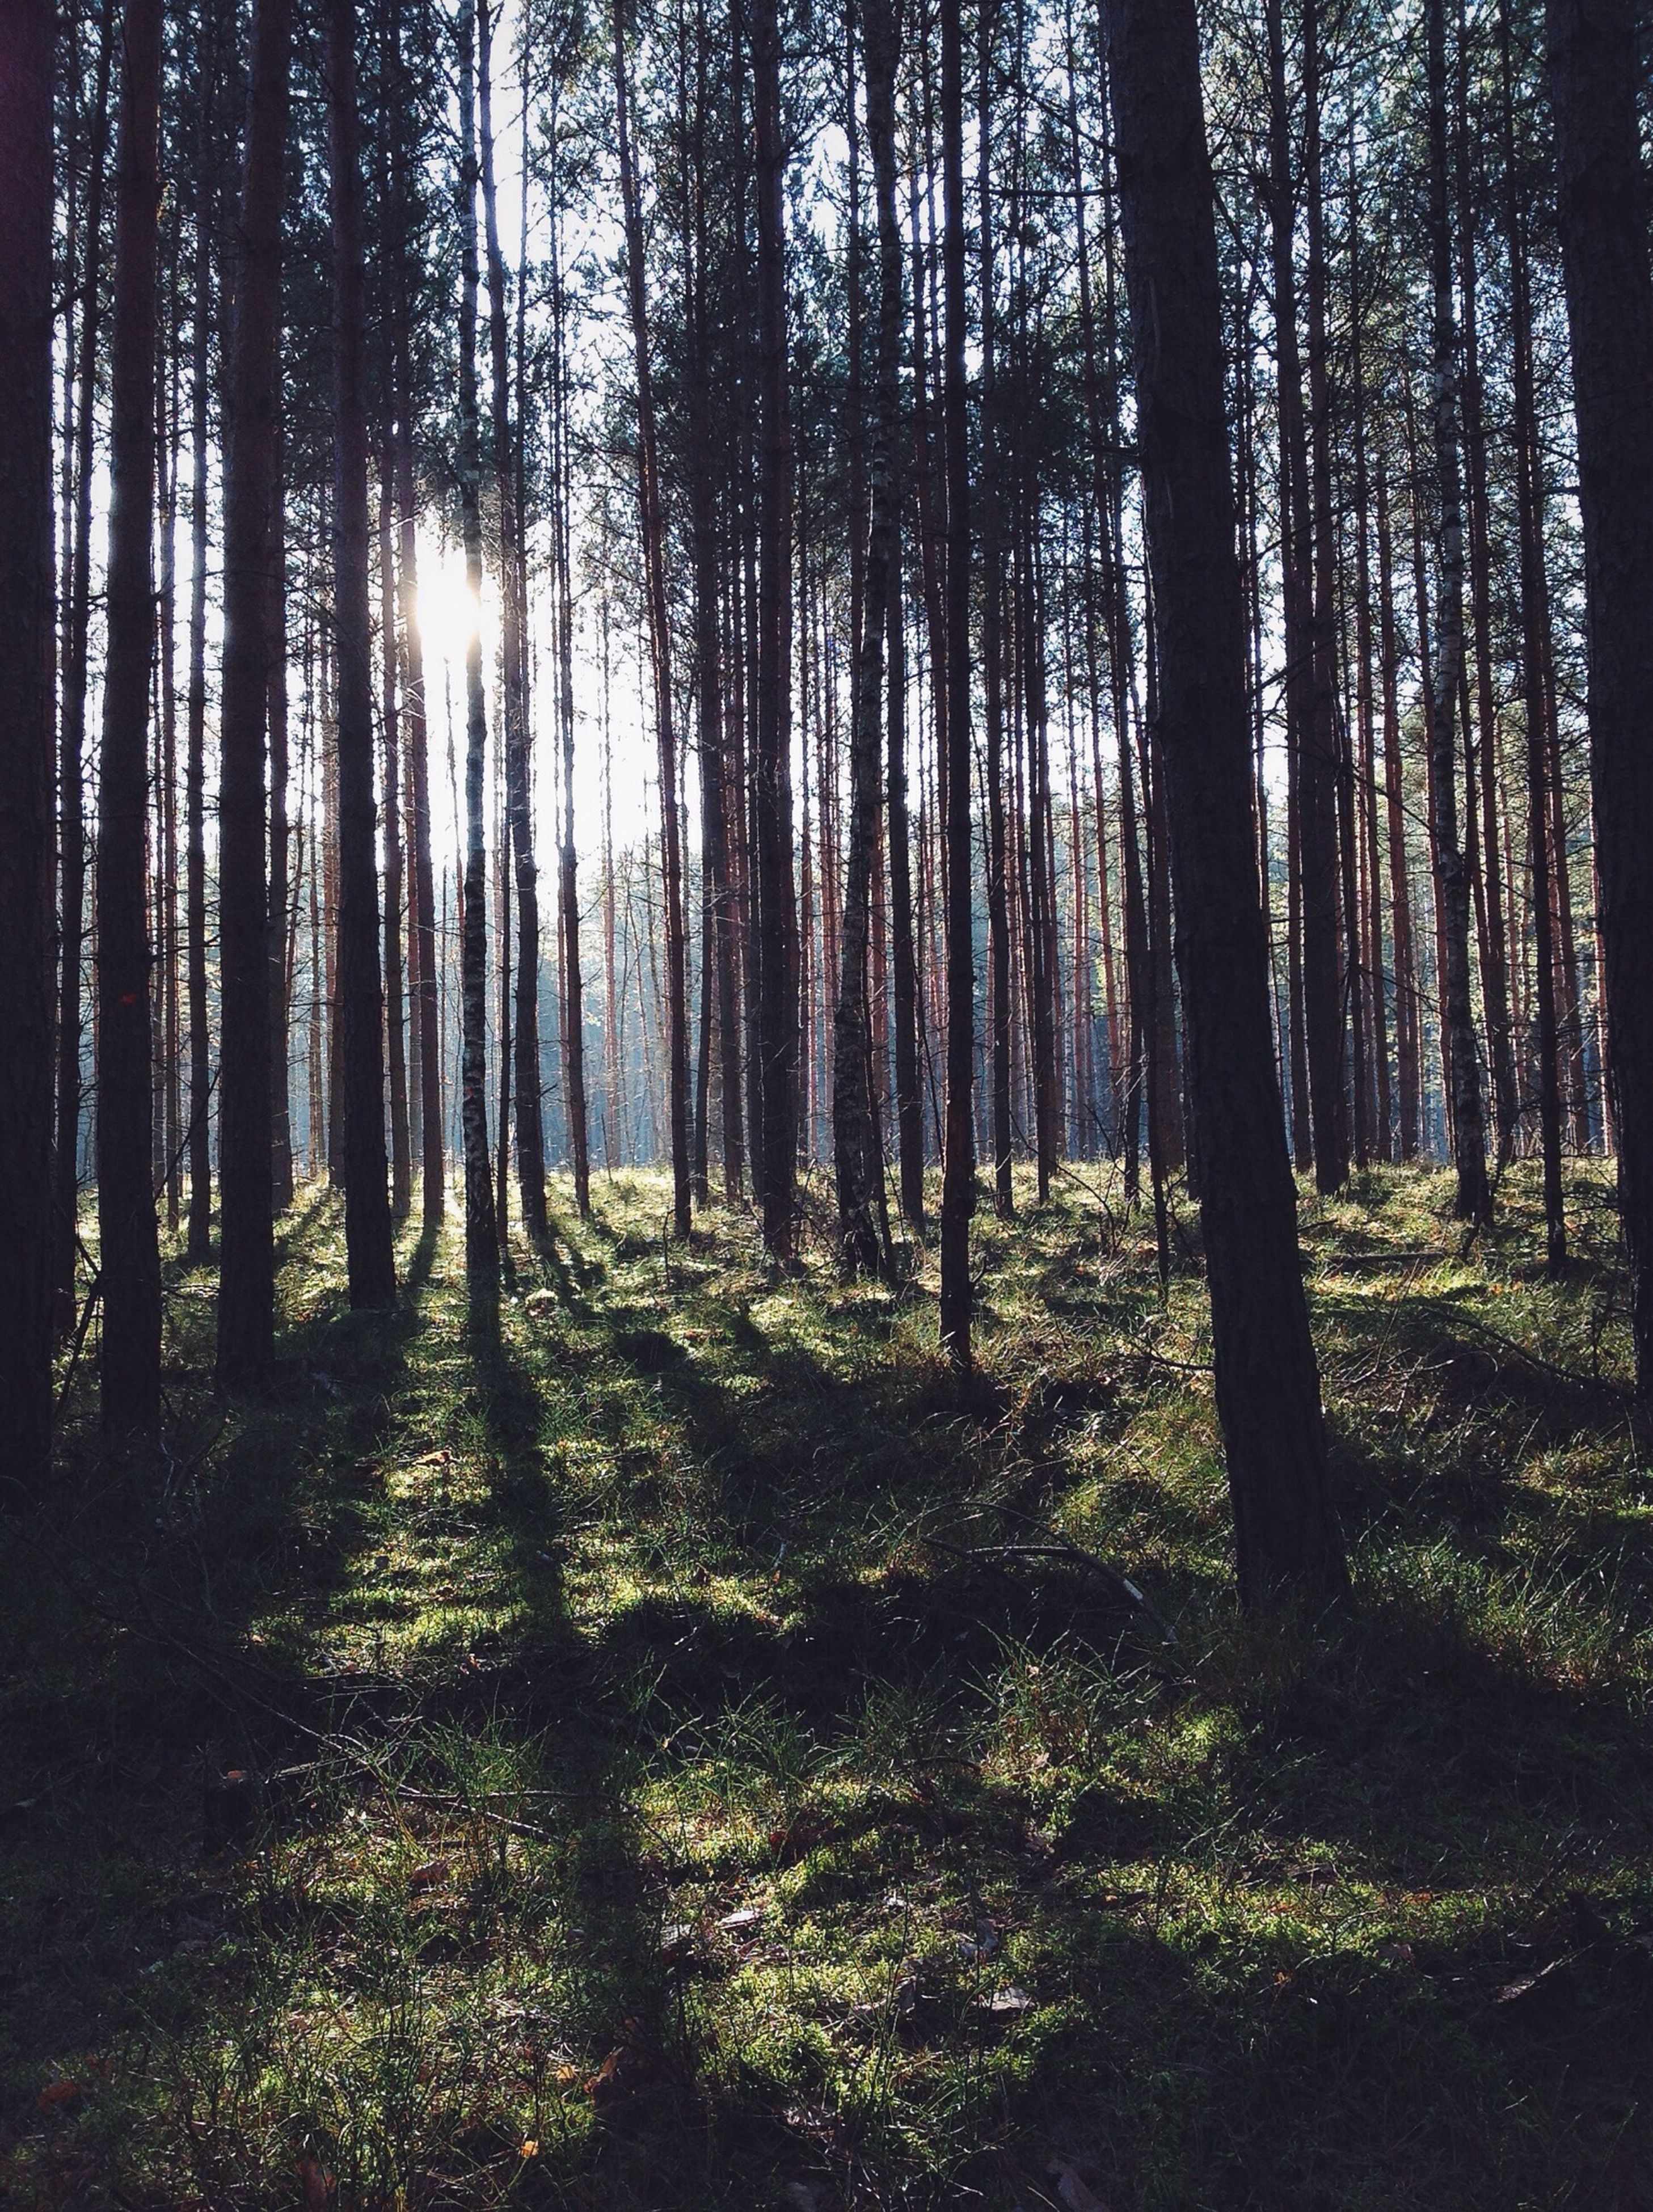 tree, forest, tree trunk, tranquility, woodland, growth, tranquil scene, sunlight, nature, beauty in nature, sun, sunbeam, scenics, lens flare, landscape, non-urban scene, back lit, outdoors, no people, grass